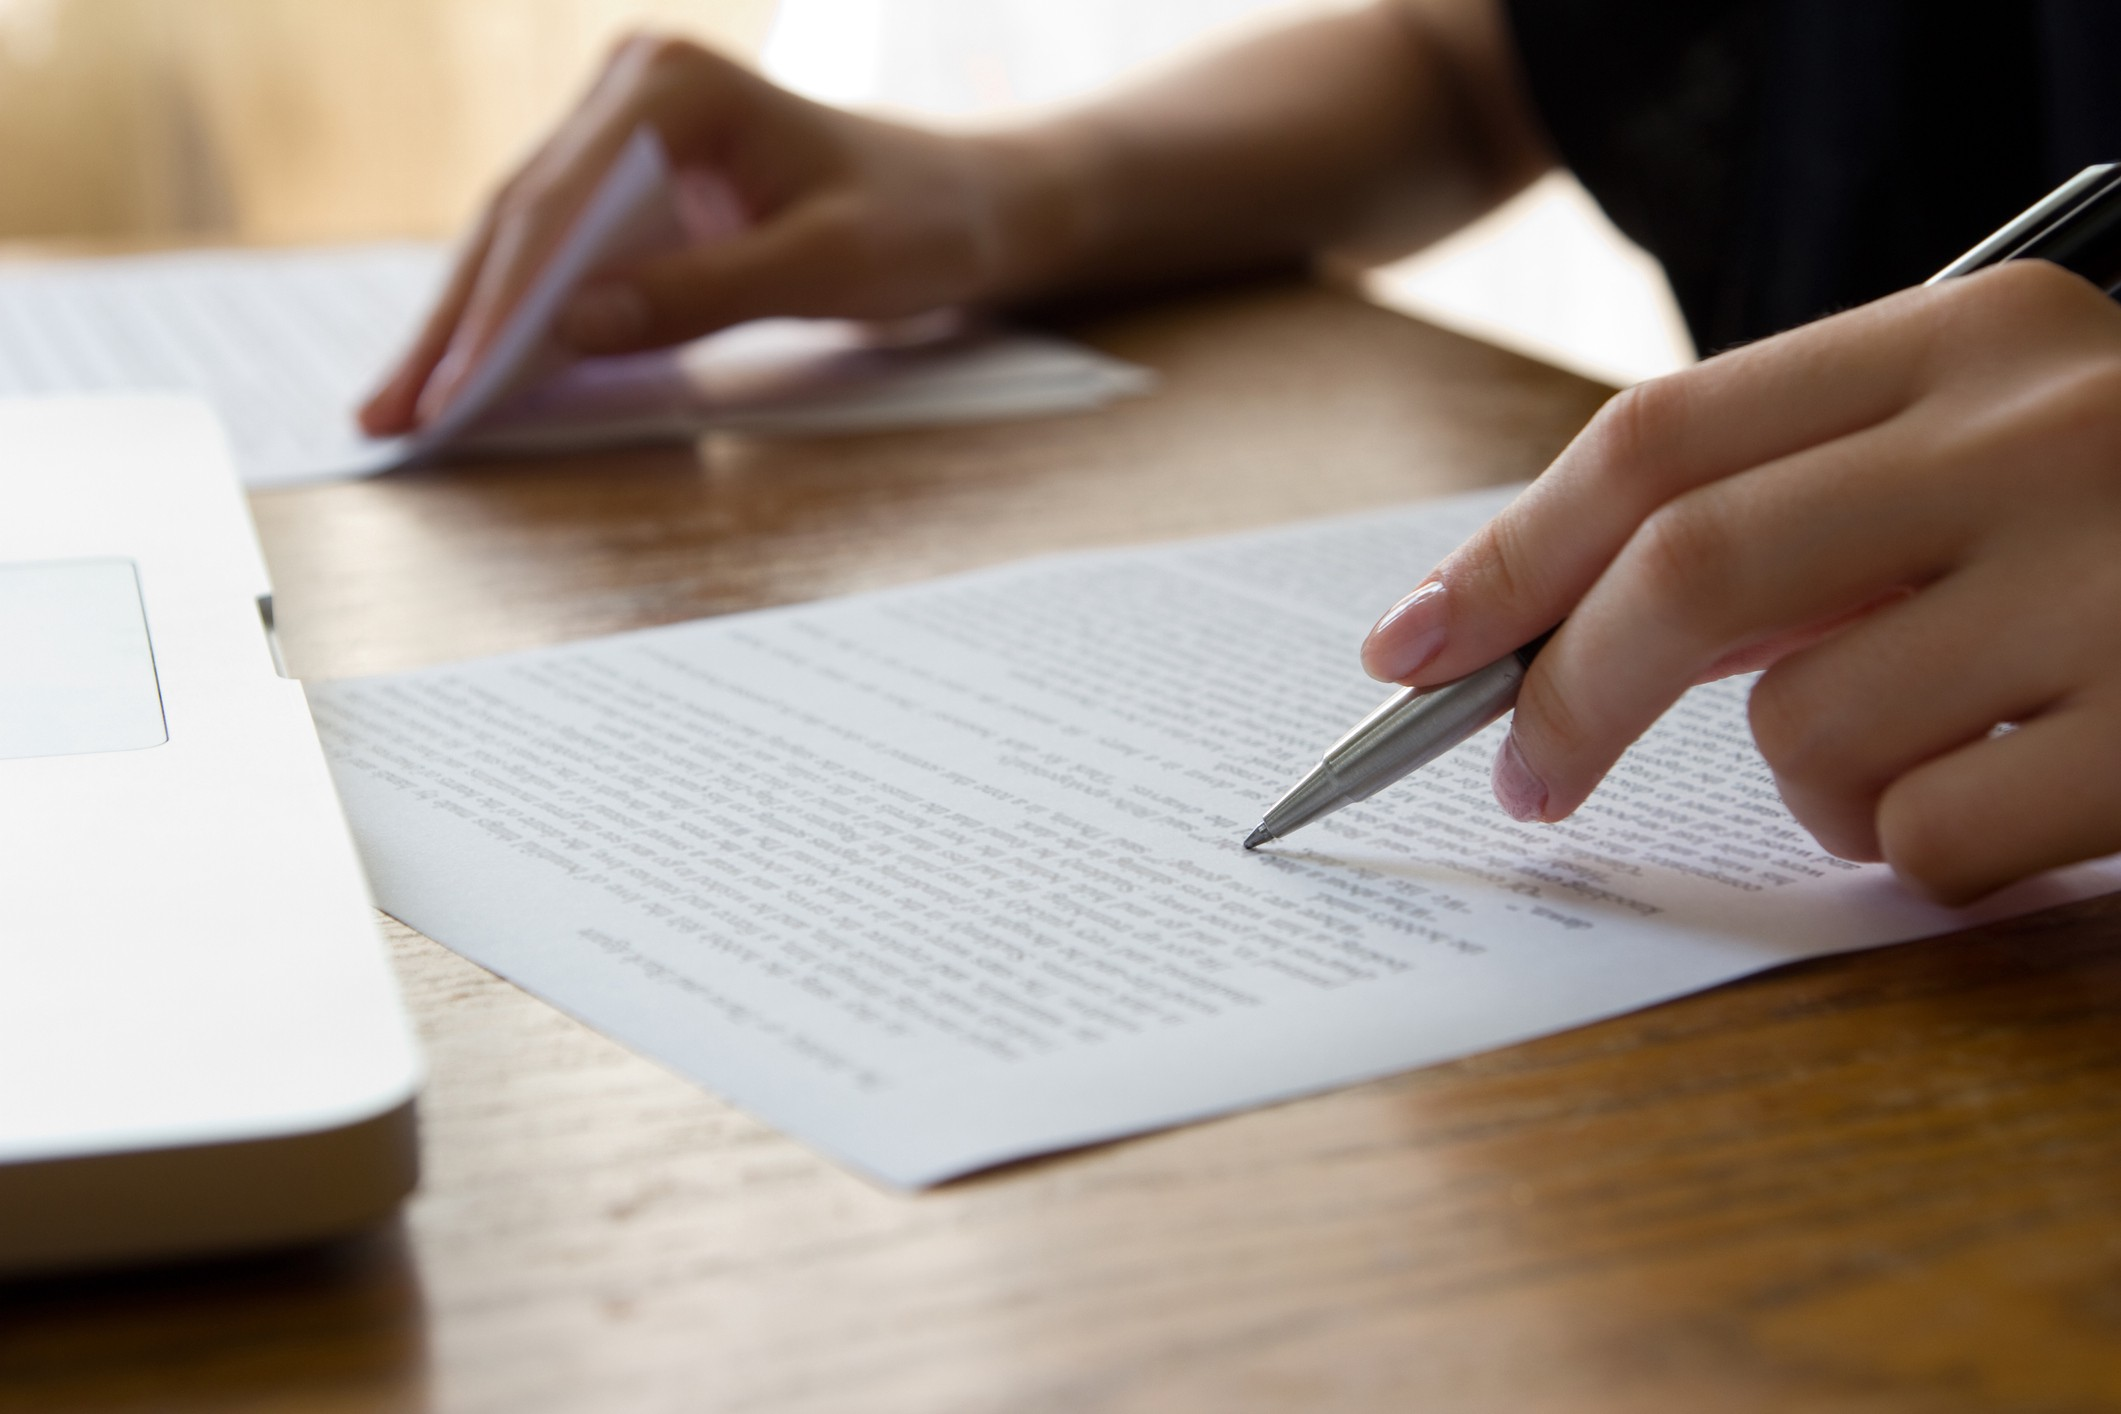 Close-up of person writing on a desk